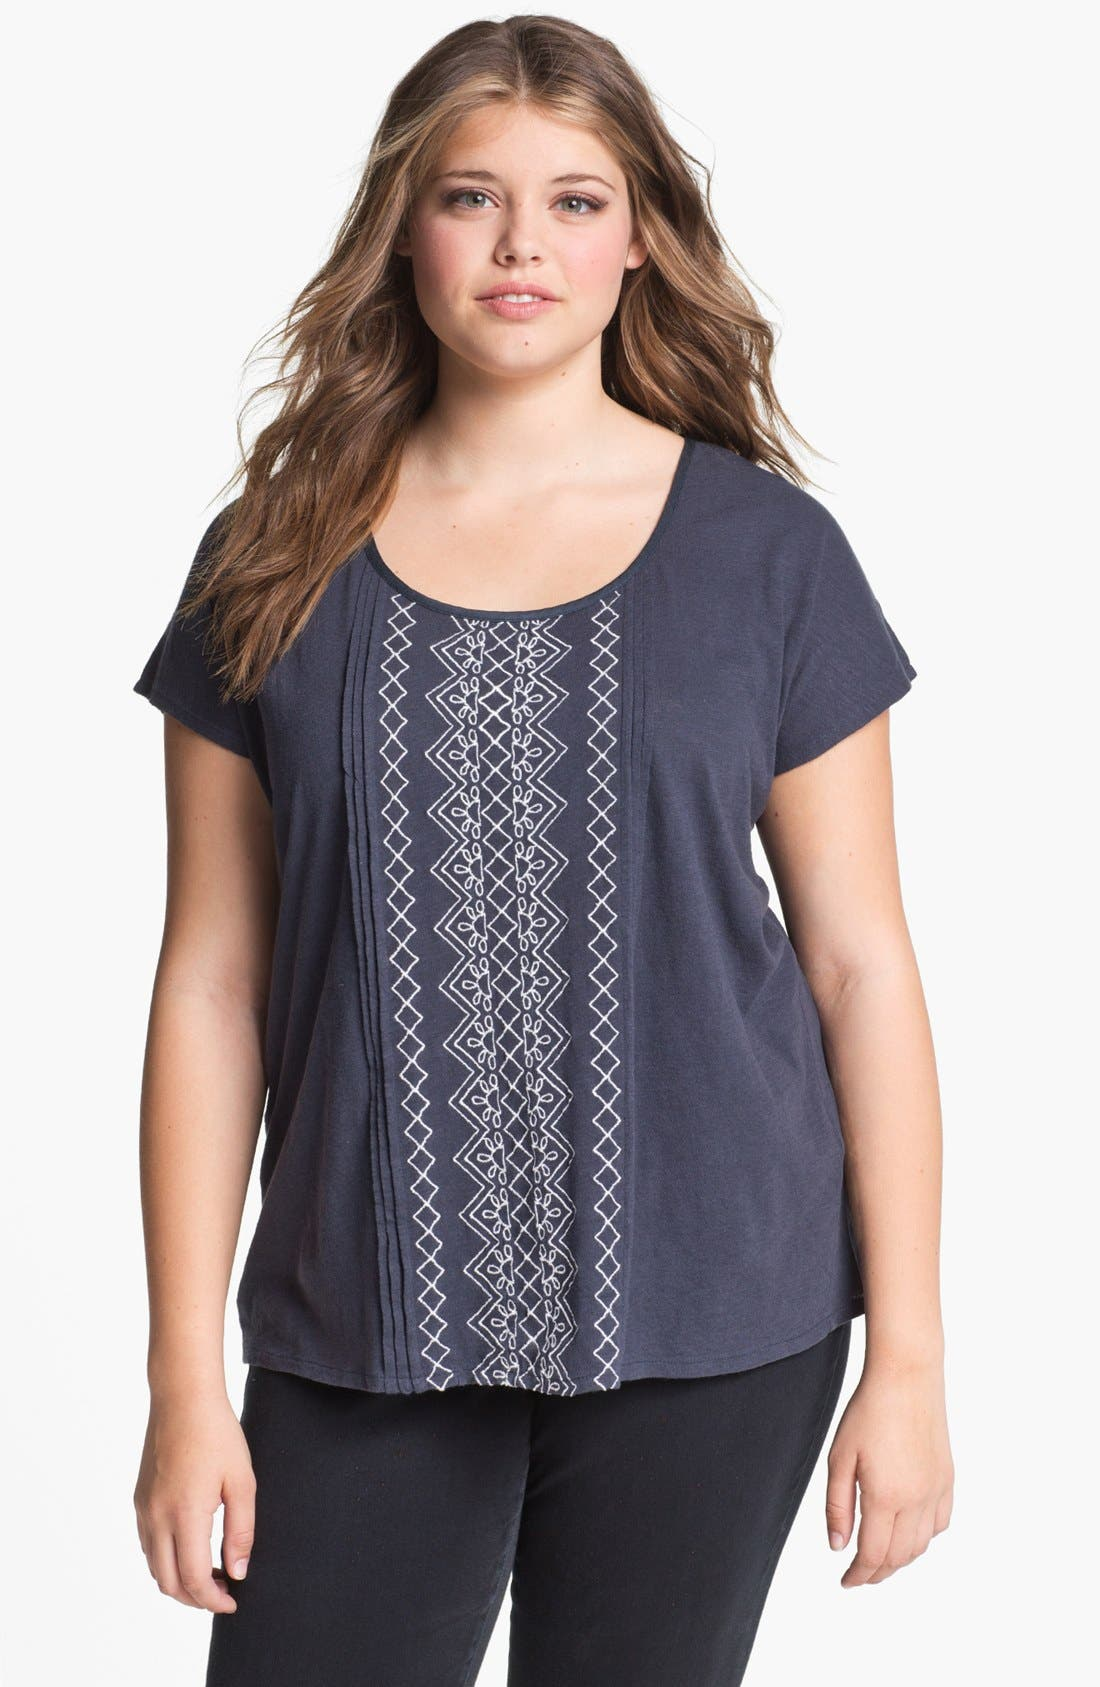 Alternate Image 1 Selected - Lucky Brand 'Lillian' Button Back Tee (Plus)